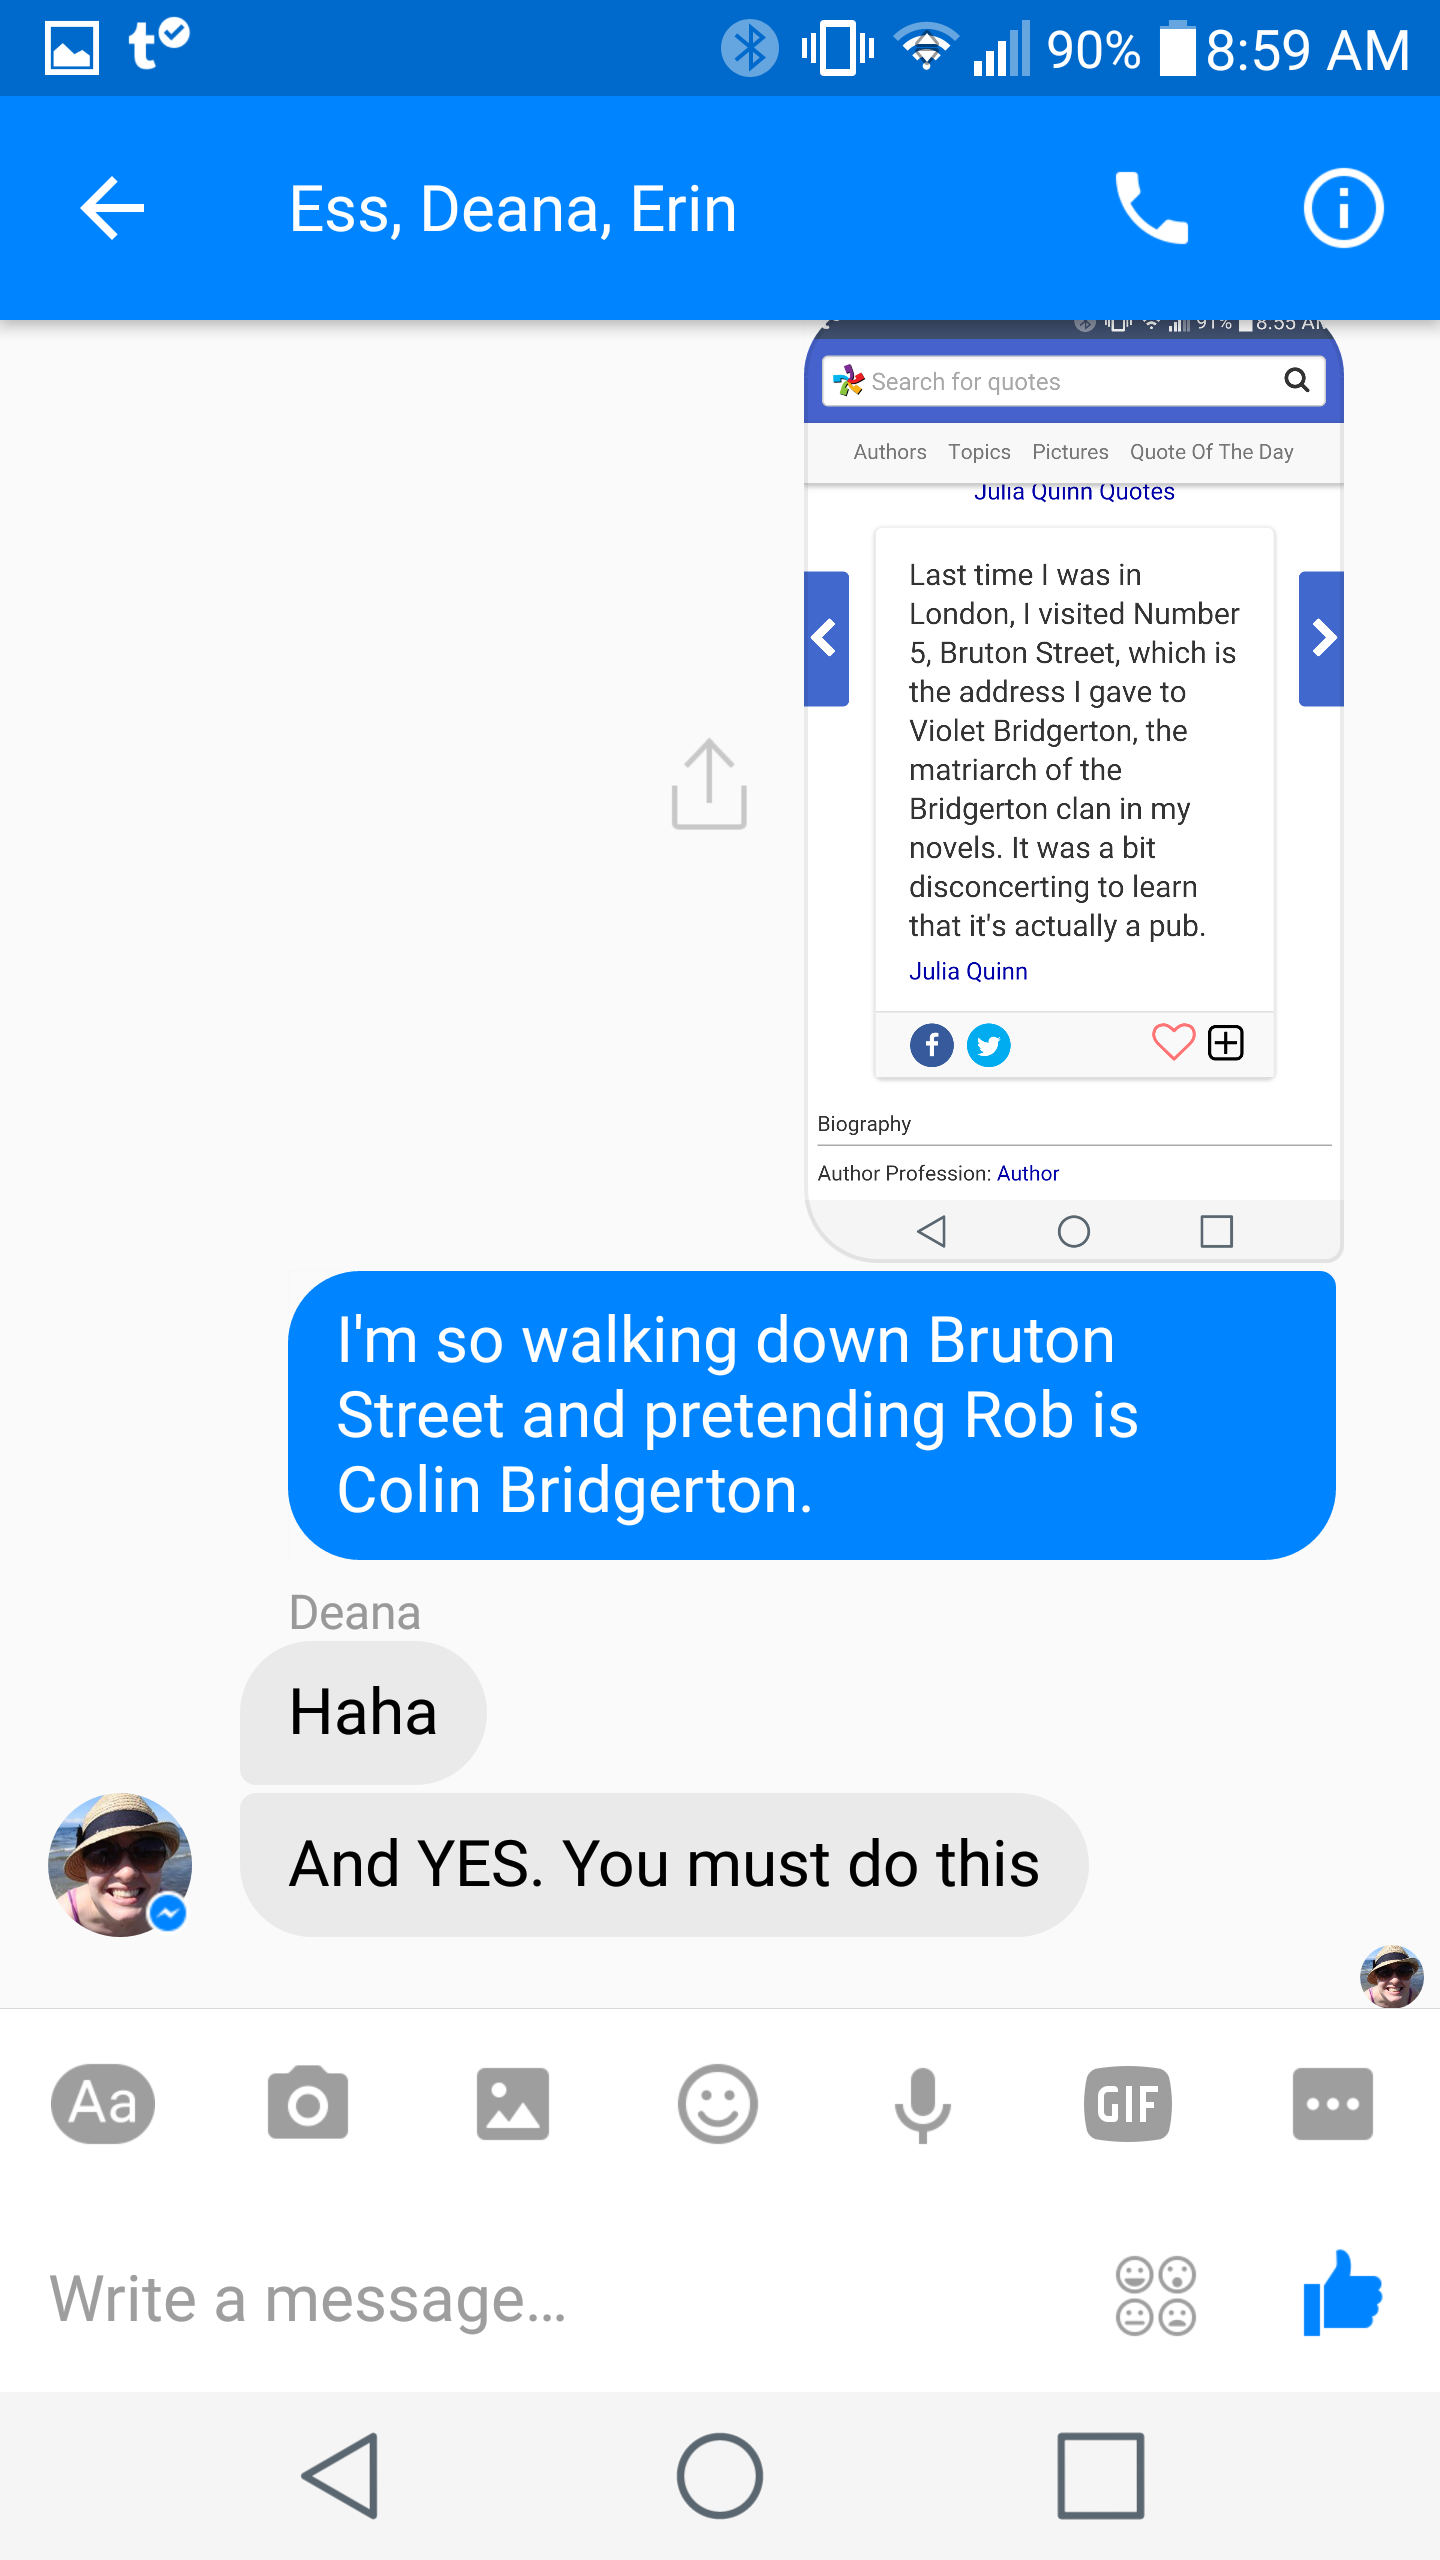 FB Chat Friday: A girl COULD go to London without